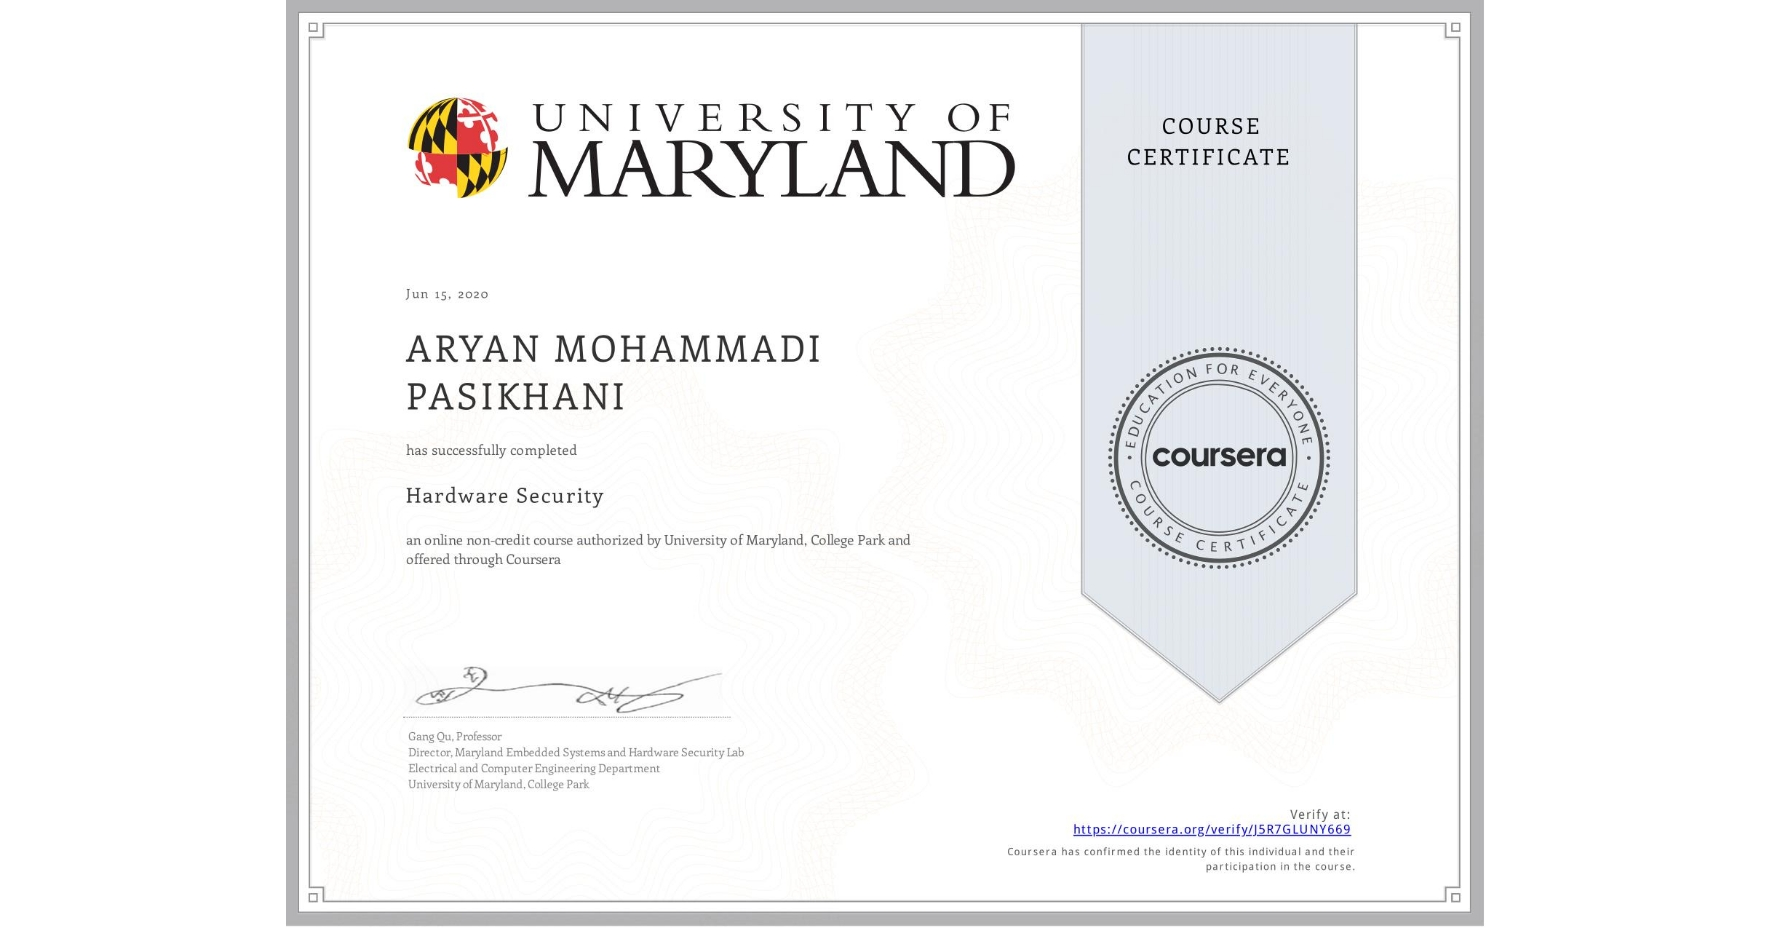 View certificate for ARYAN MOHAMMADI PASIKHANI, Hardware Security, an online non-credit course authorized by University of Maryland, College Park and offered through Coursera